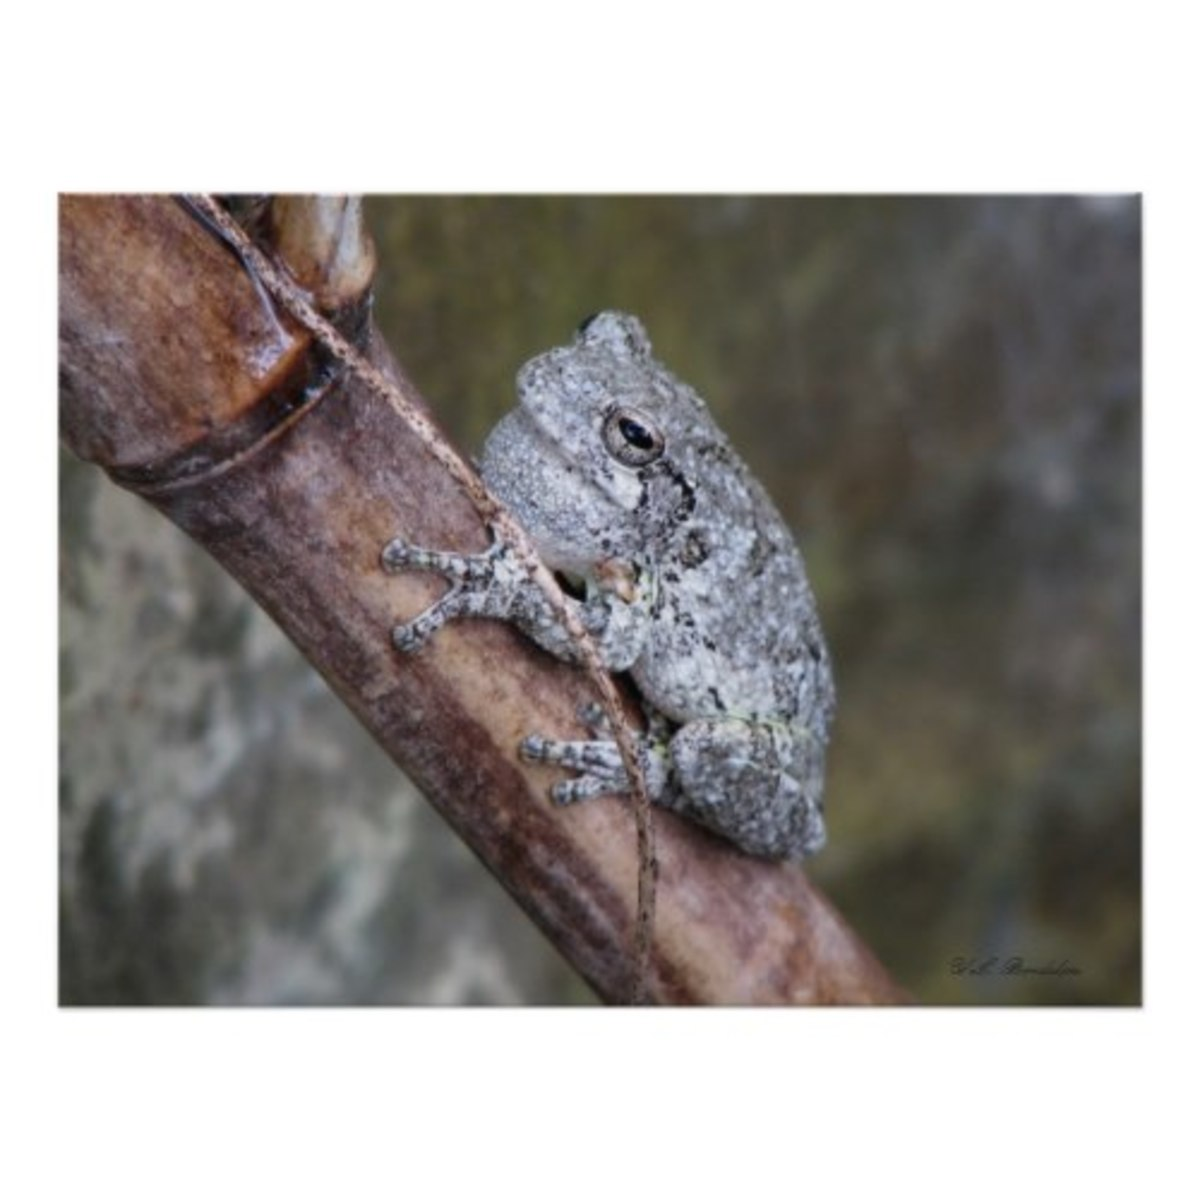 A male gray tree frog sings from a rain barrel to attract a female.